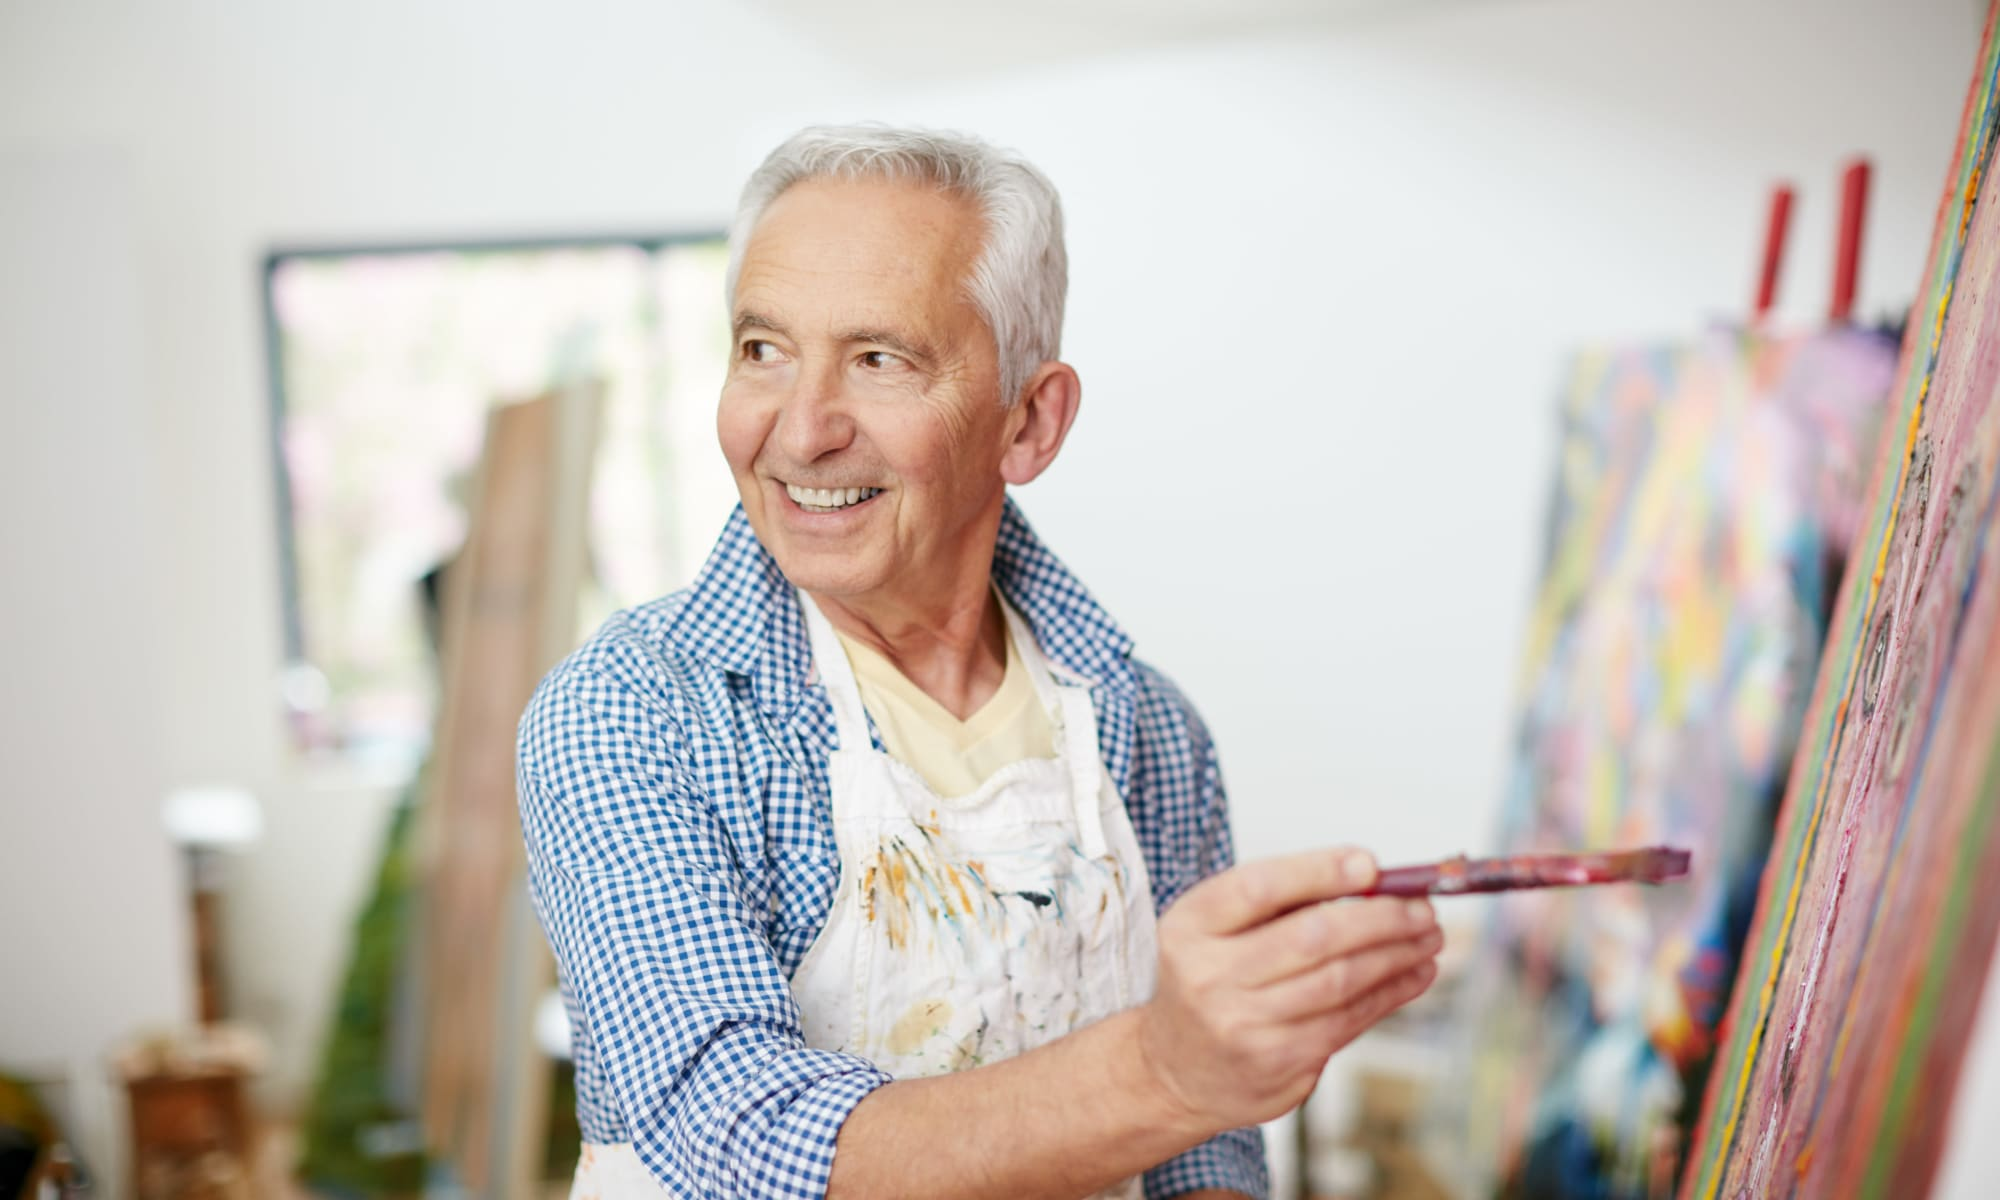 Resident painting at MacArthur Hills in Irving, Texas